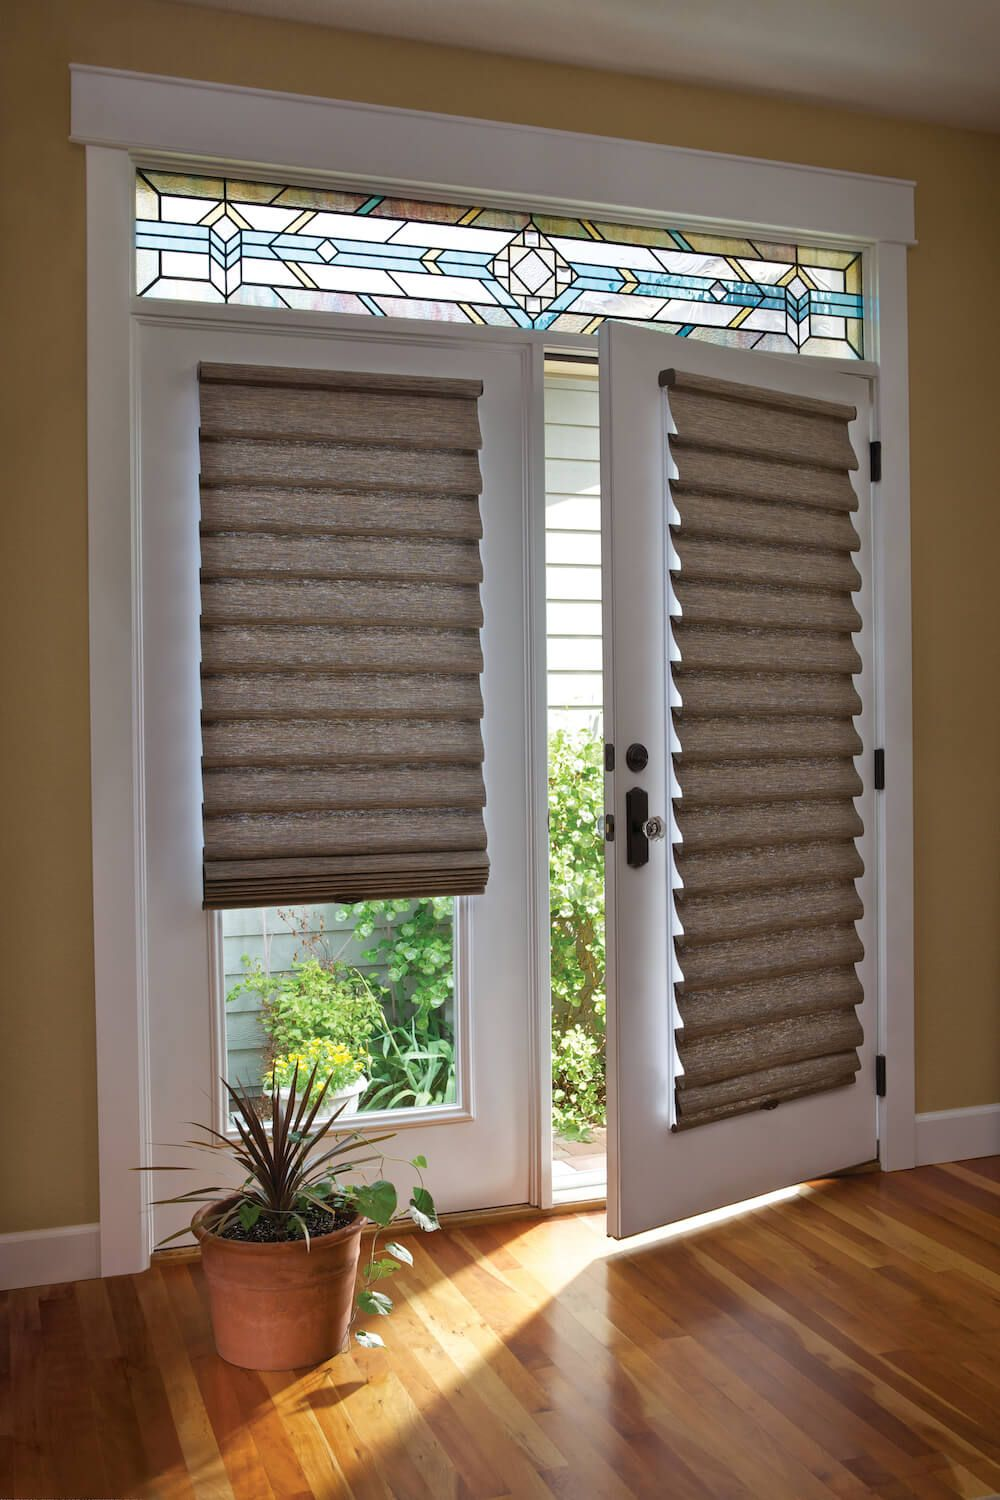 Superieur Alternatives To Vertical Blinds: Vignette Modern Roman Shades